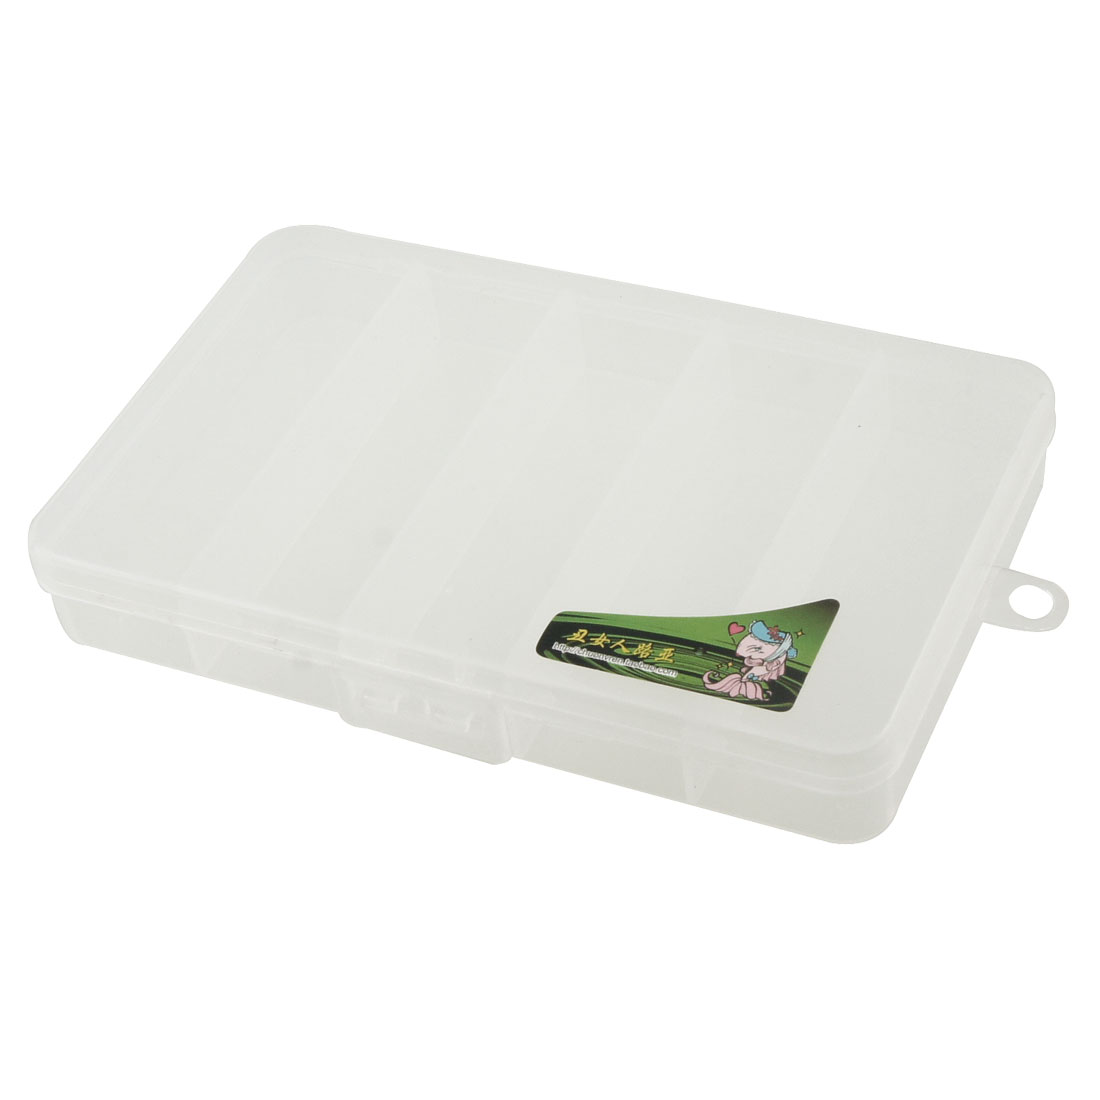 Unique Bargains 5 Compartments Fishing Tackle Box Hook Lure Case by